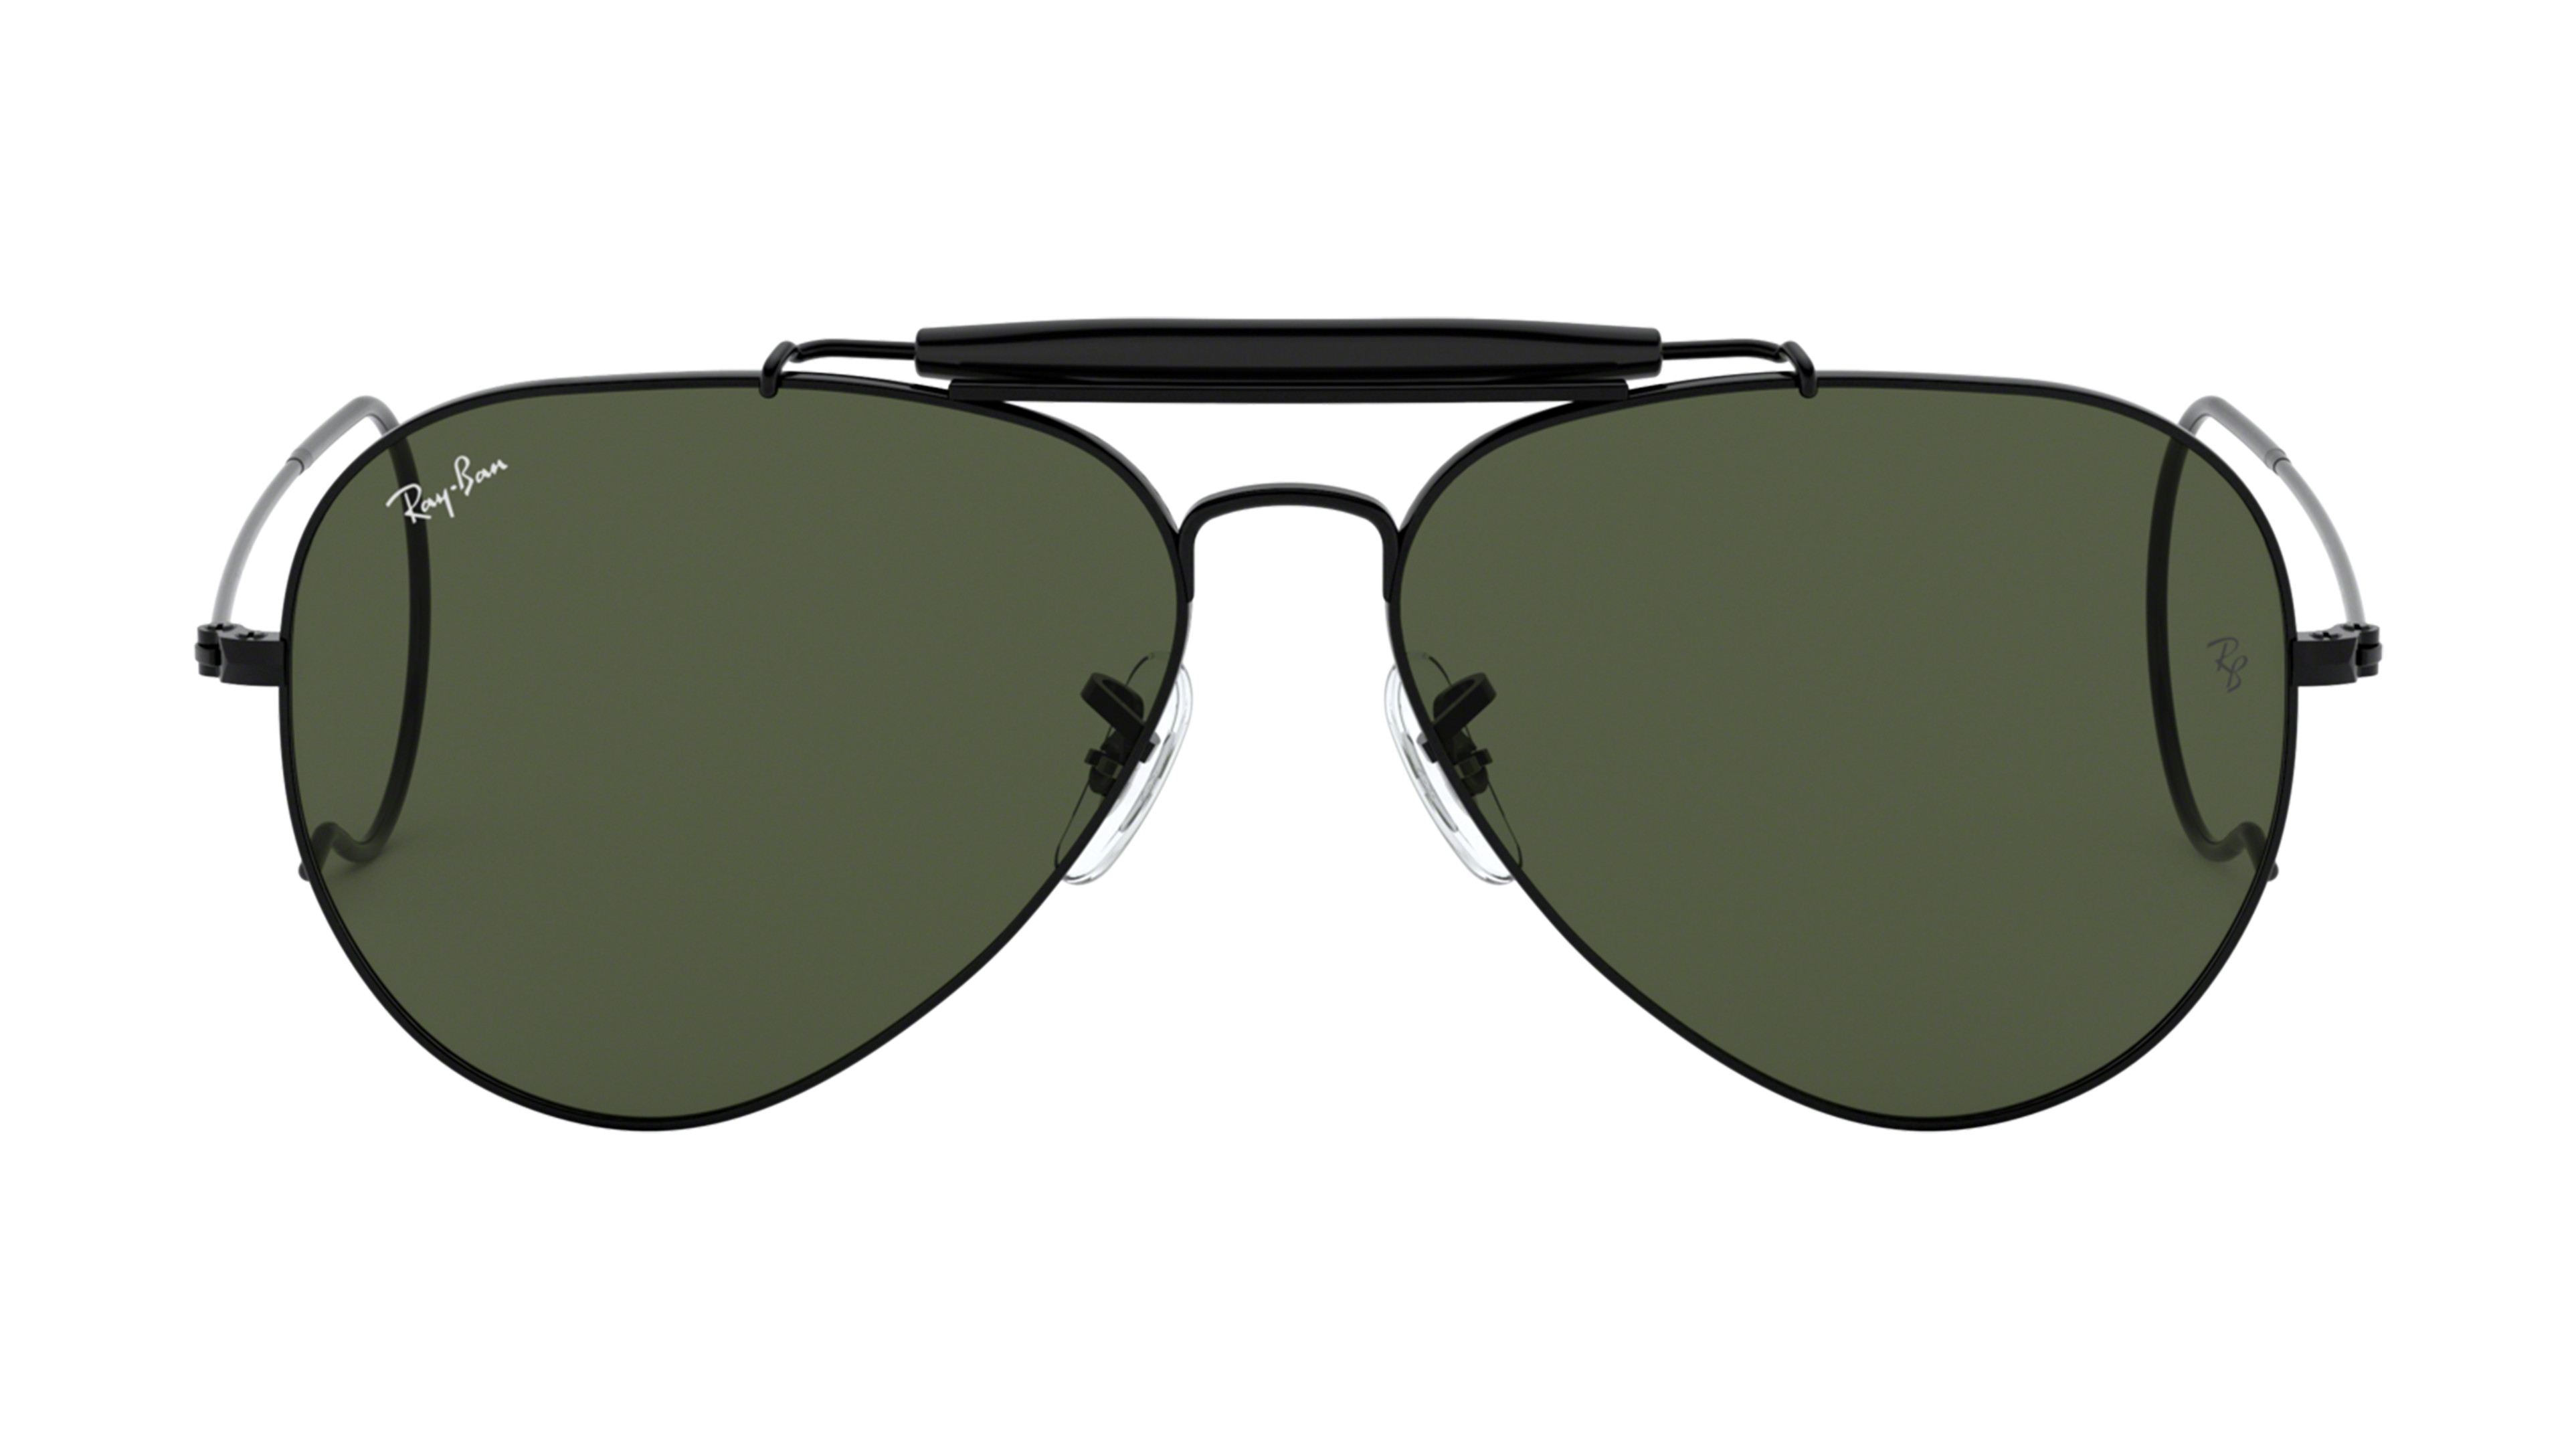 0805289695004-front-Ray-Ban-0RB3030-9500-Outdoorsman-1